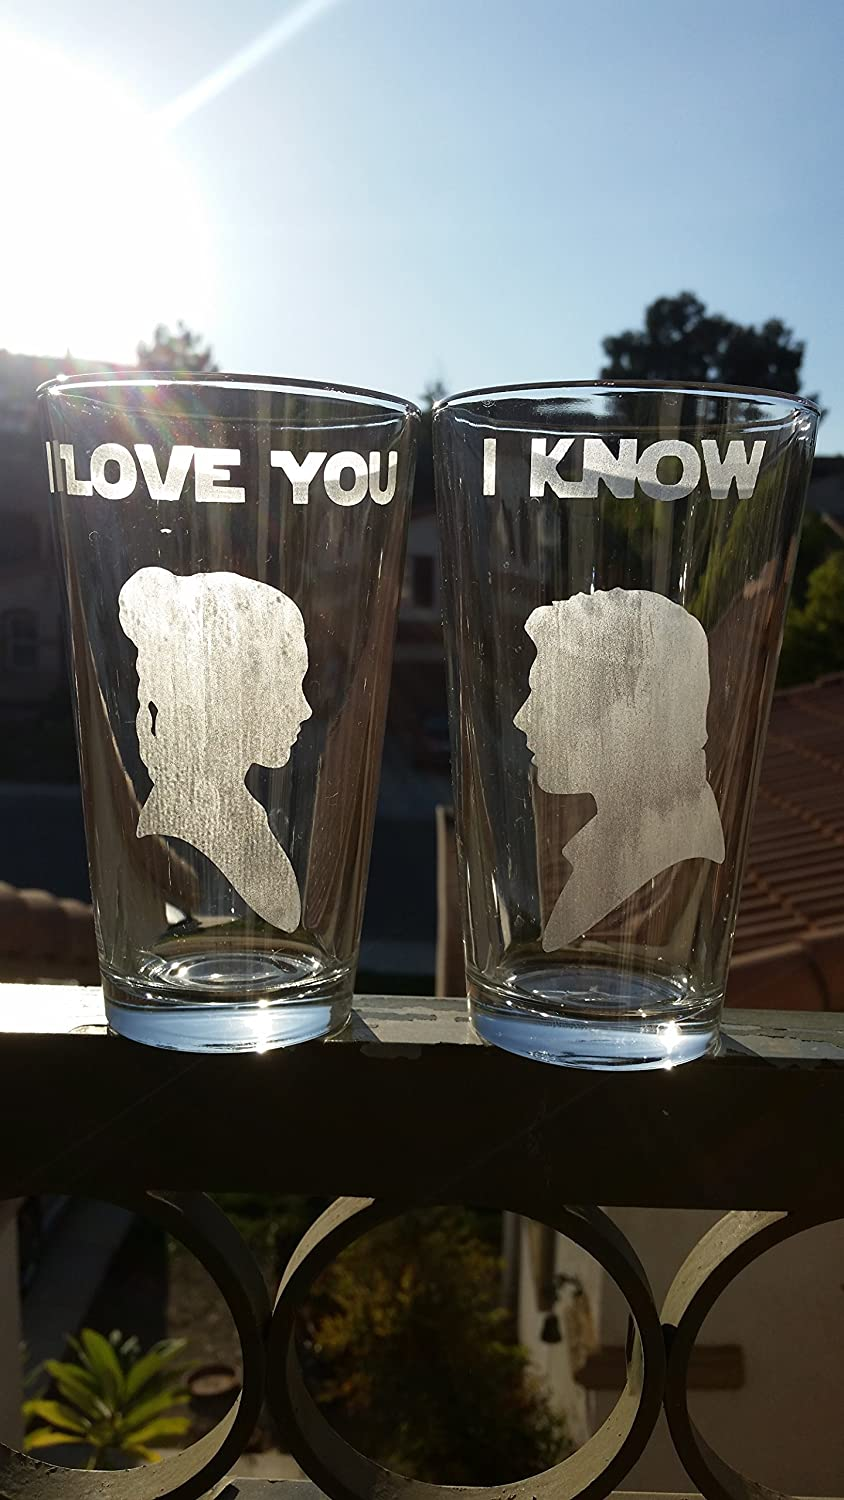 Star Wars Han & Leia Inspired Pint Glass Set Beer Glasses I Love You I Know